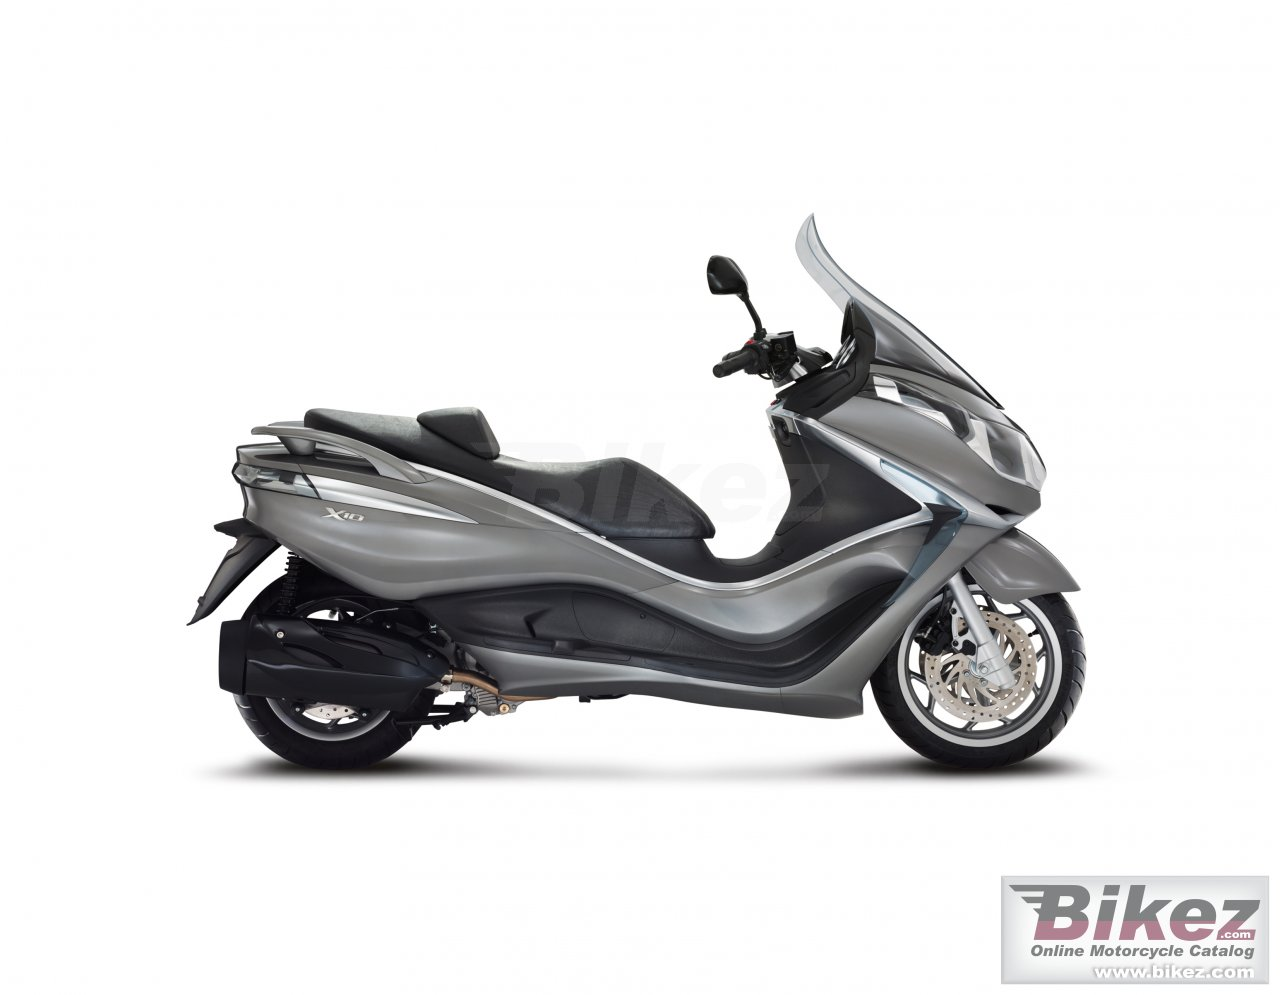 Big Piaggio x10 350 i.e. executive picture and wallpaper from Bikez.com